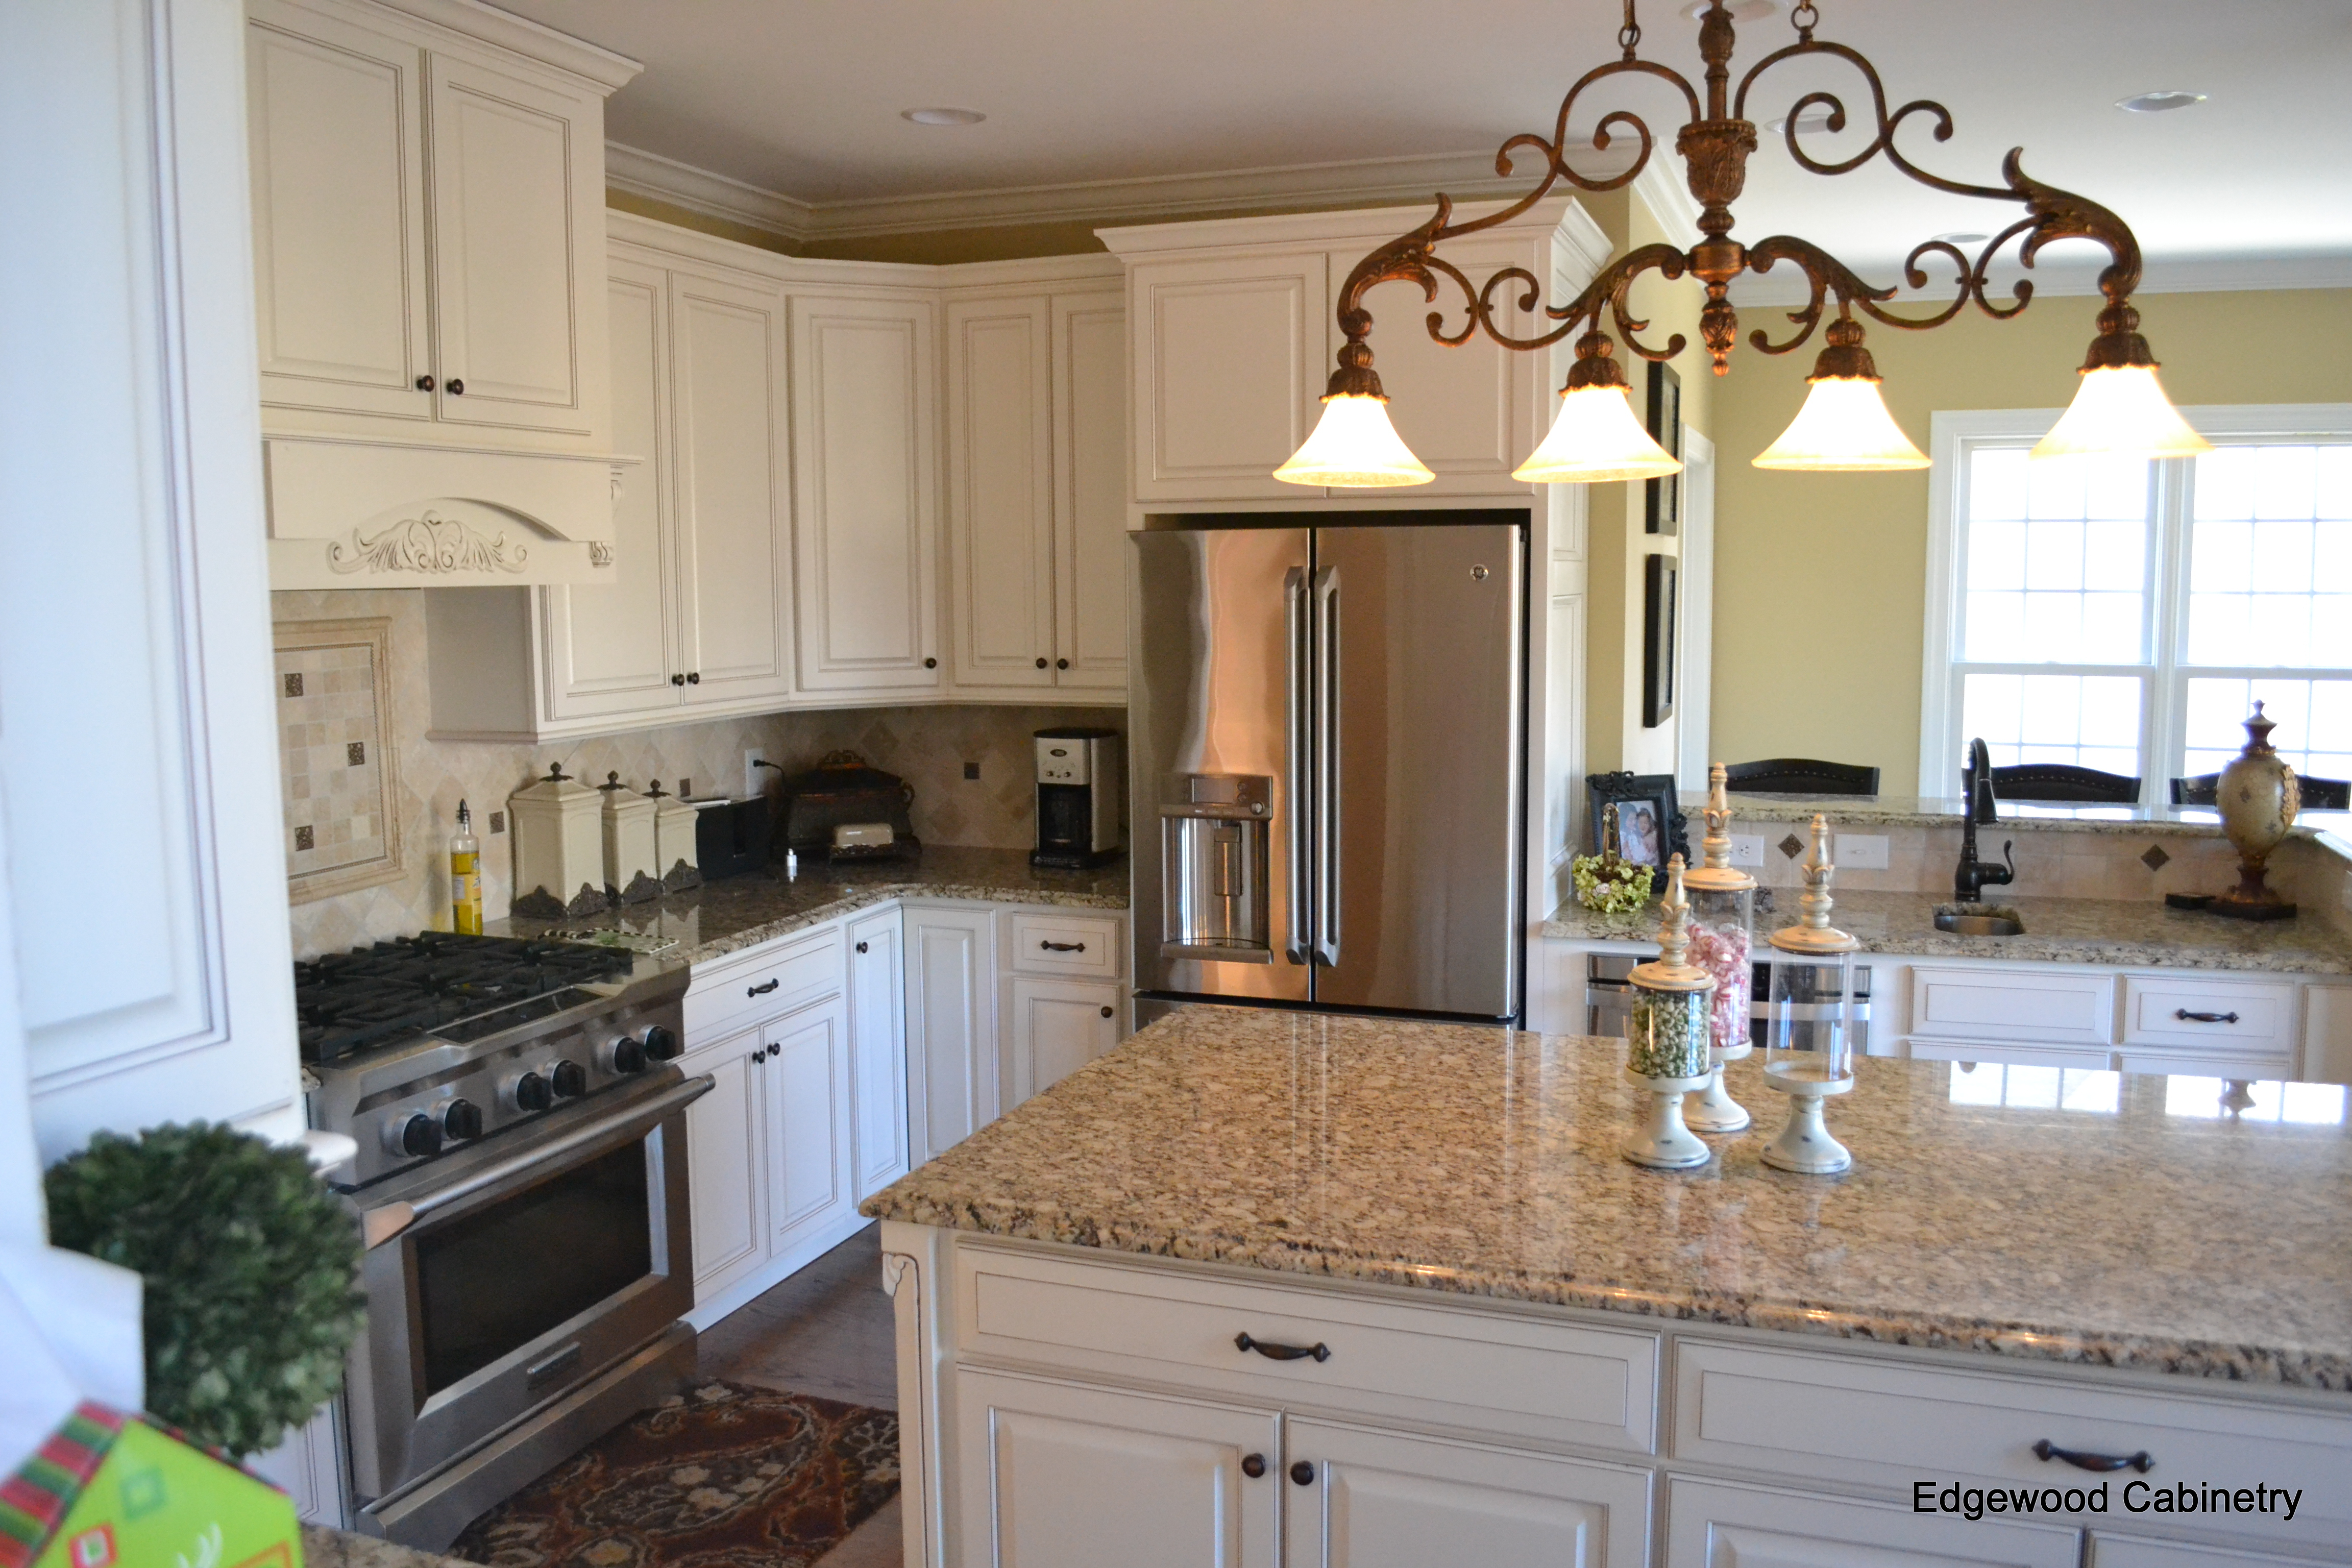 off white kitchen cabinets with glaze-edgewood cabinetry